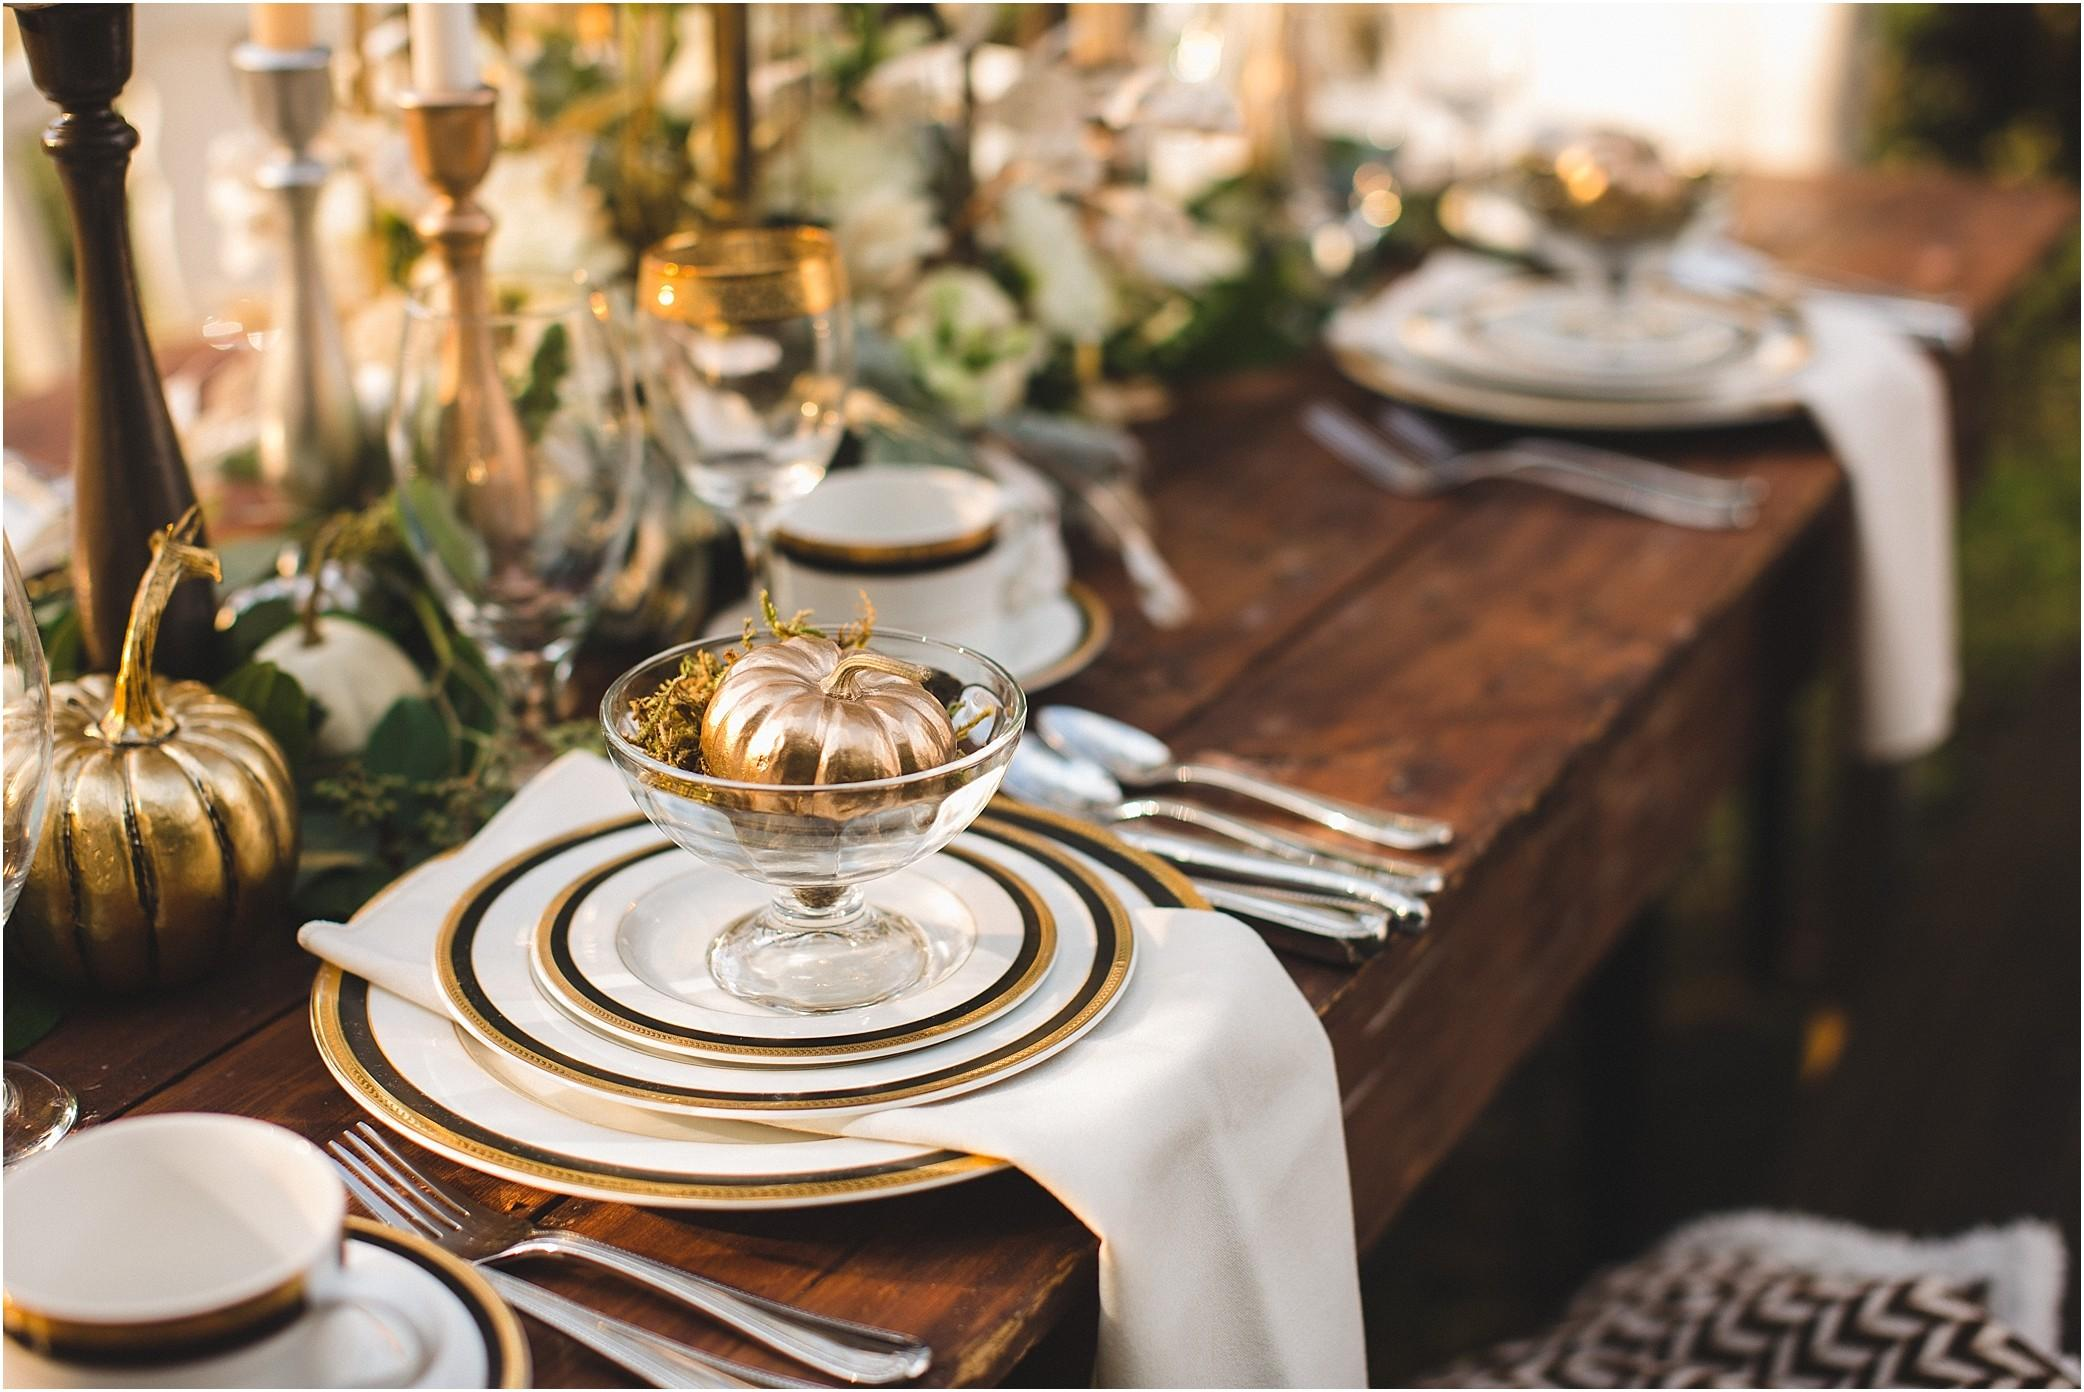 Thanksgiving Table Setting Ideas Decorations